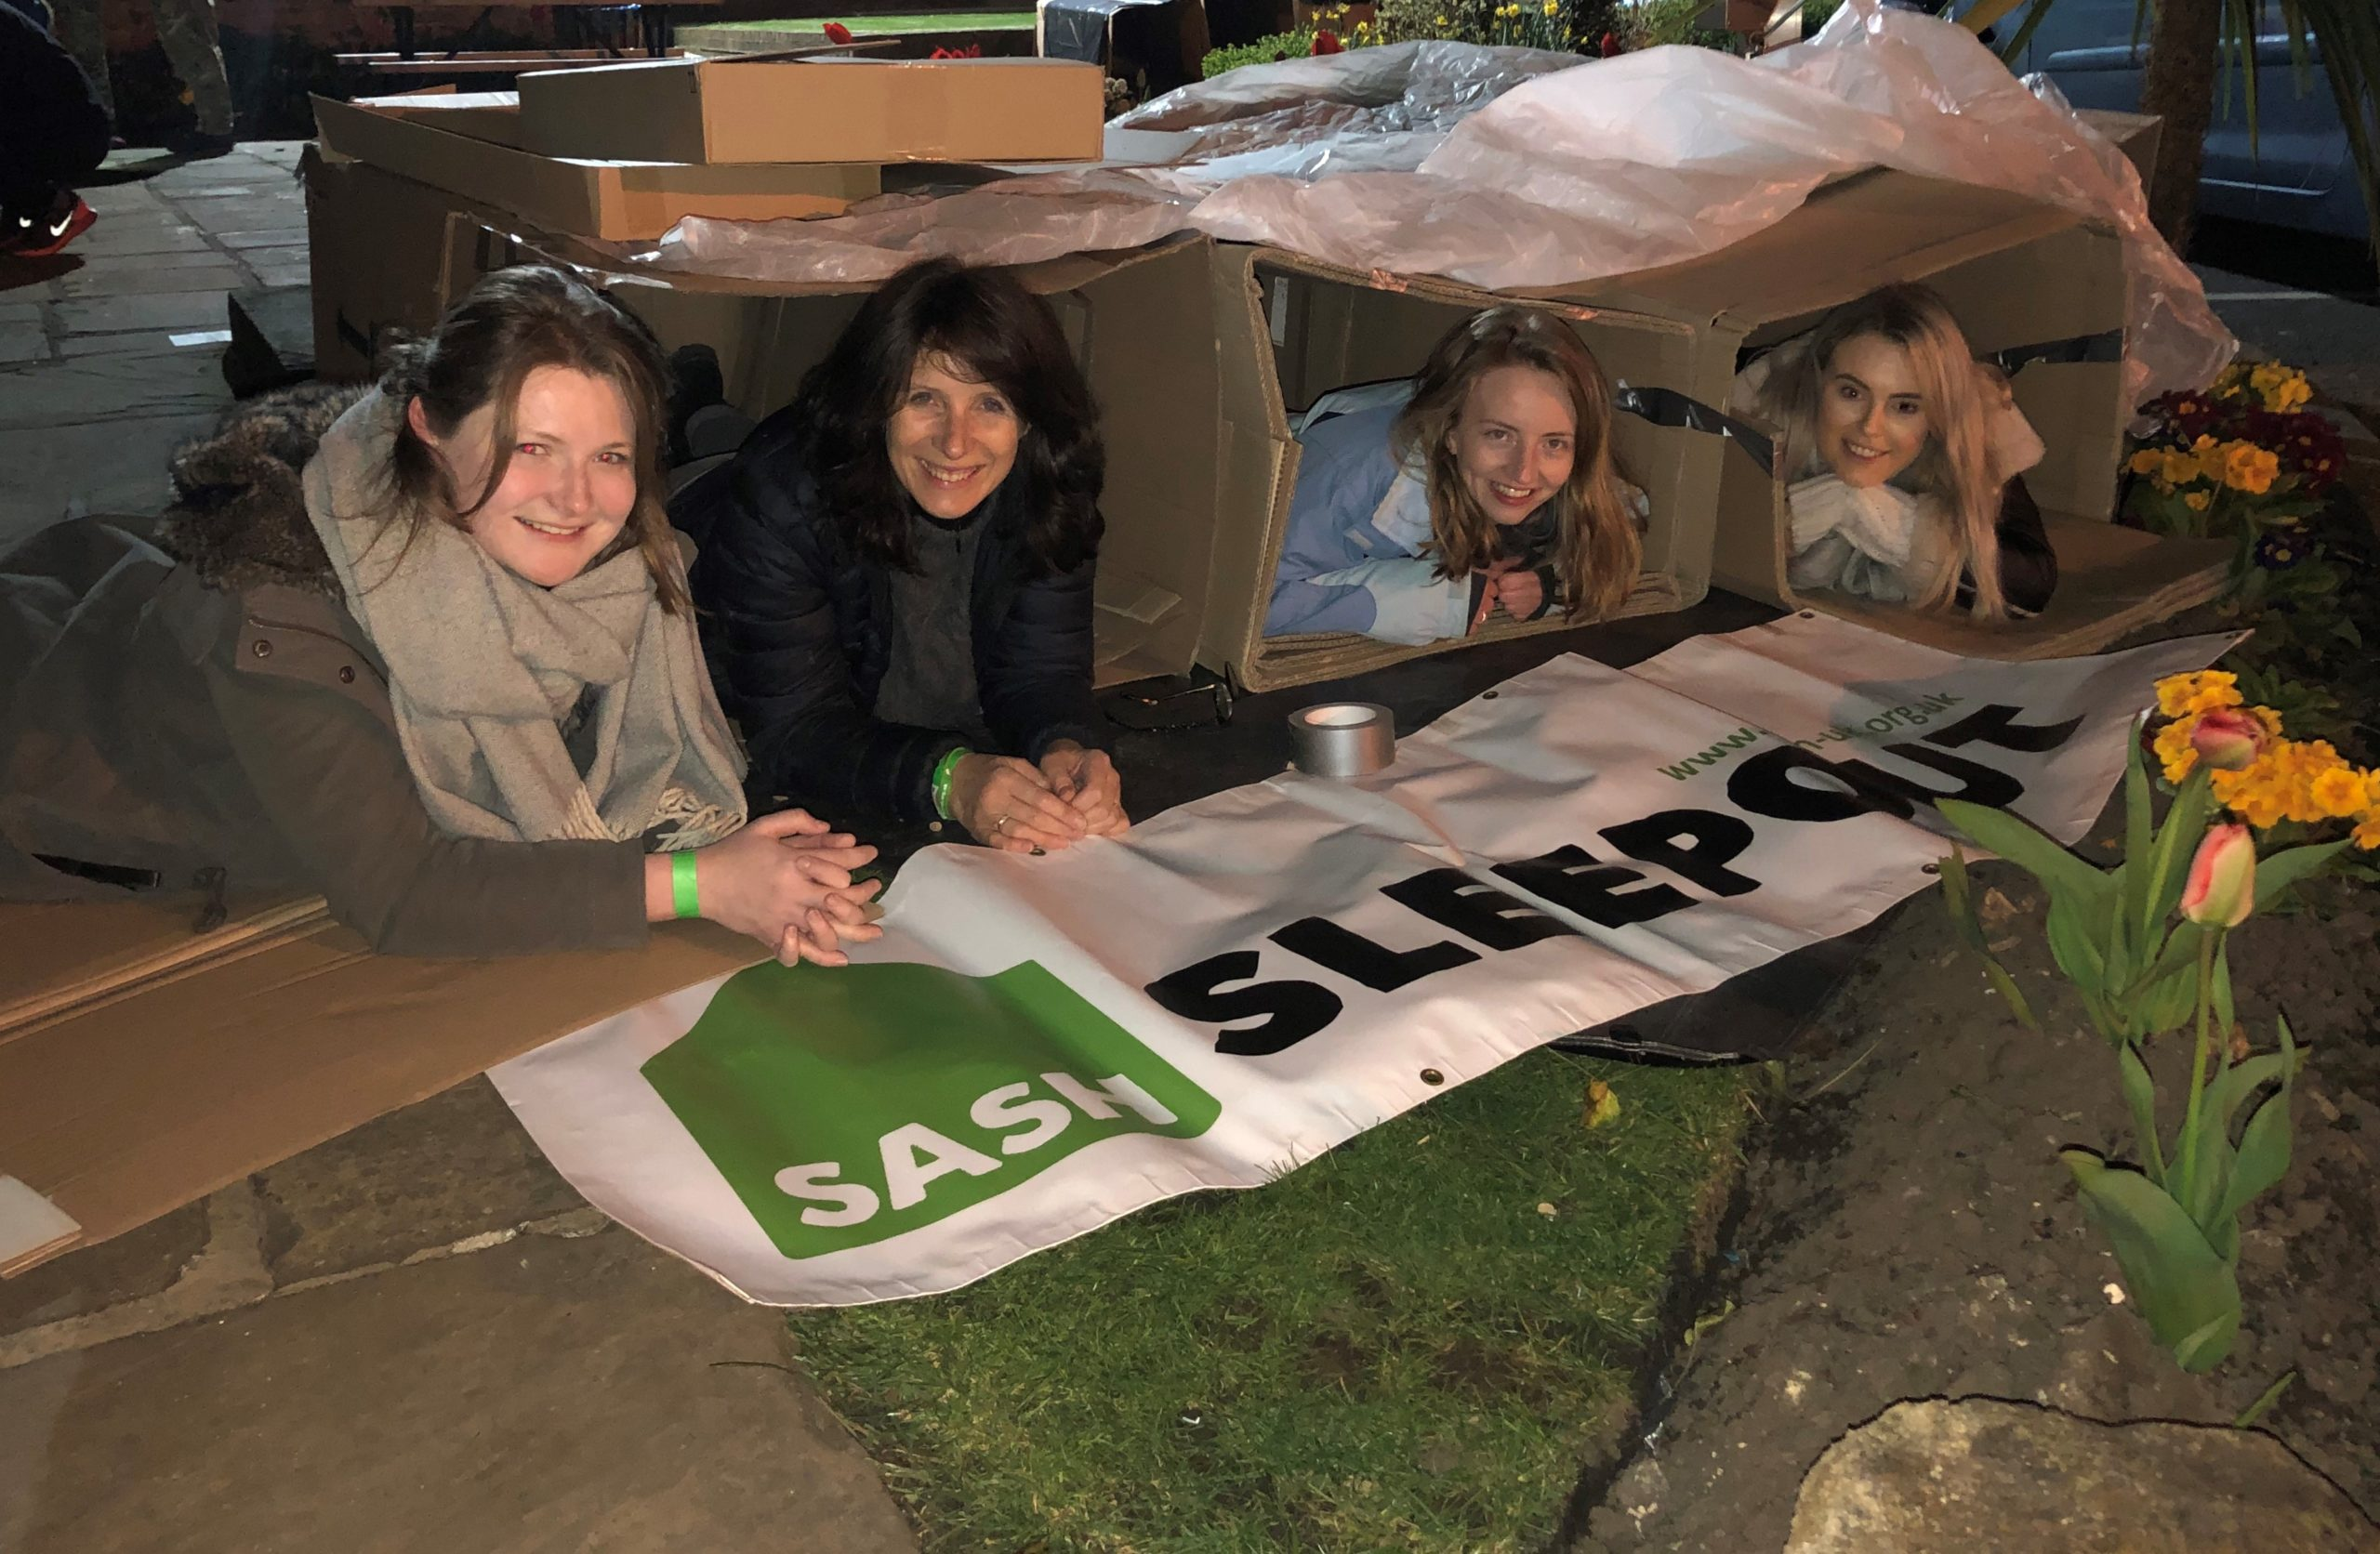 Intandem-team-in-shelter-boxes-for-sash-sleepout